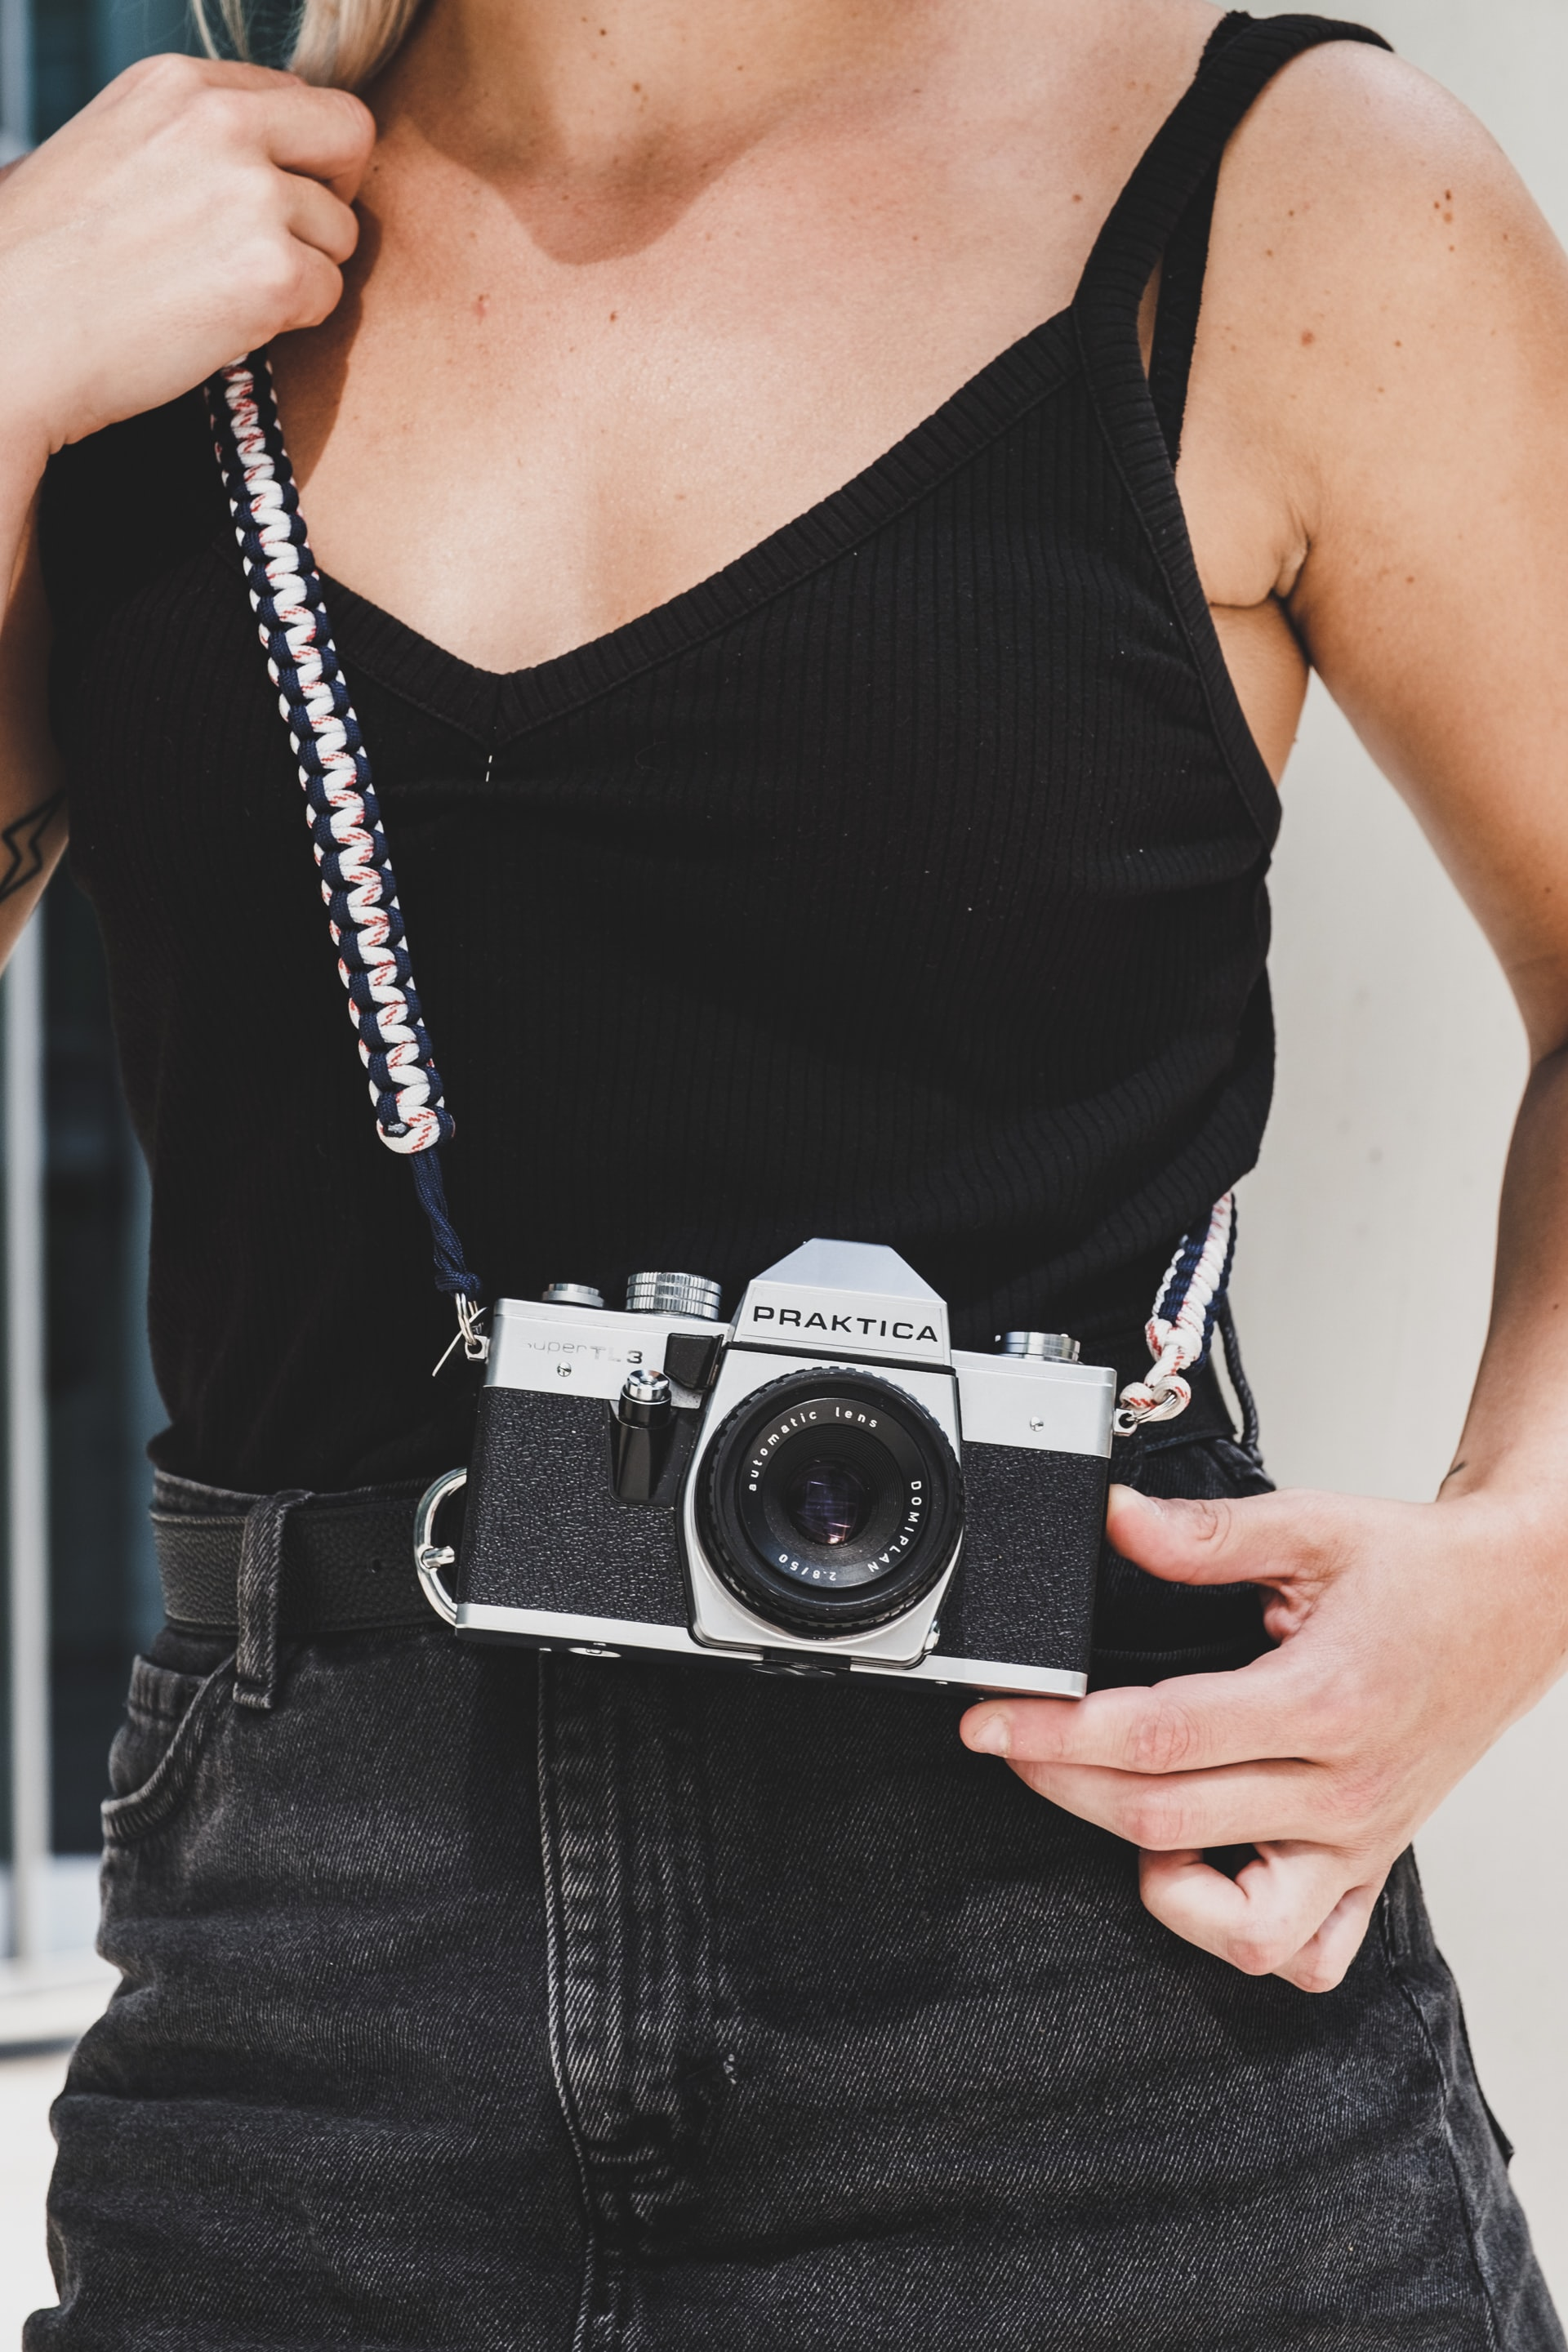 woman wearing black spaghetti strap camisole holding black and gray Praktica SLR camera